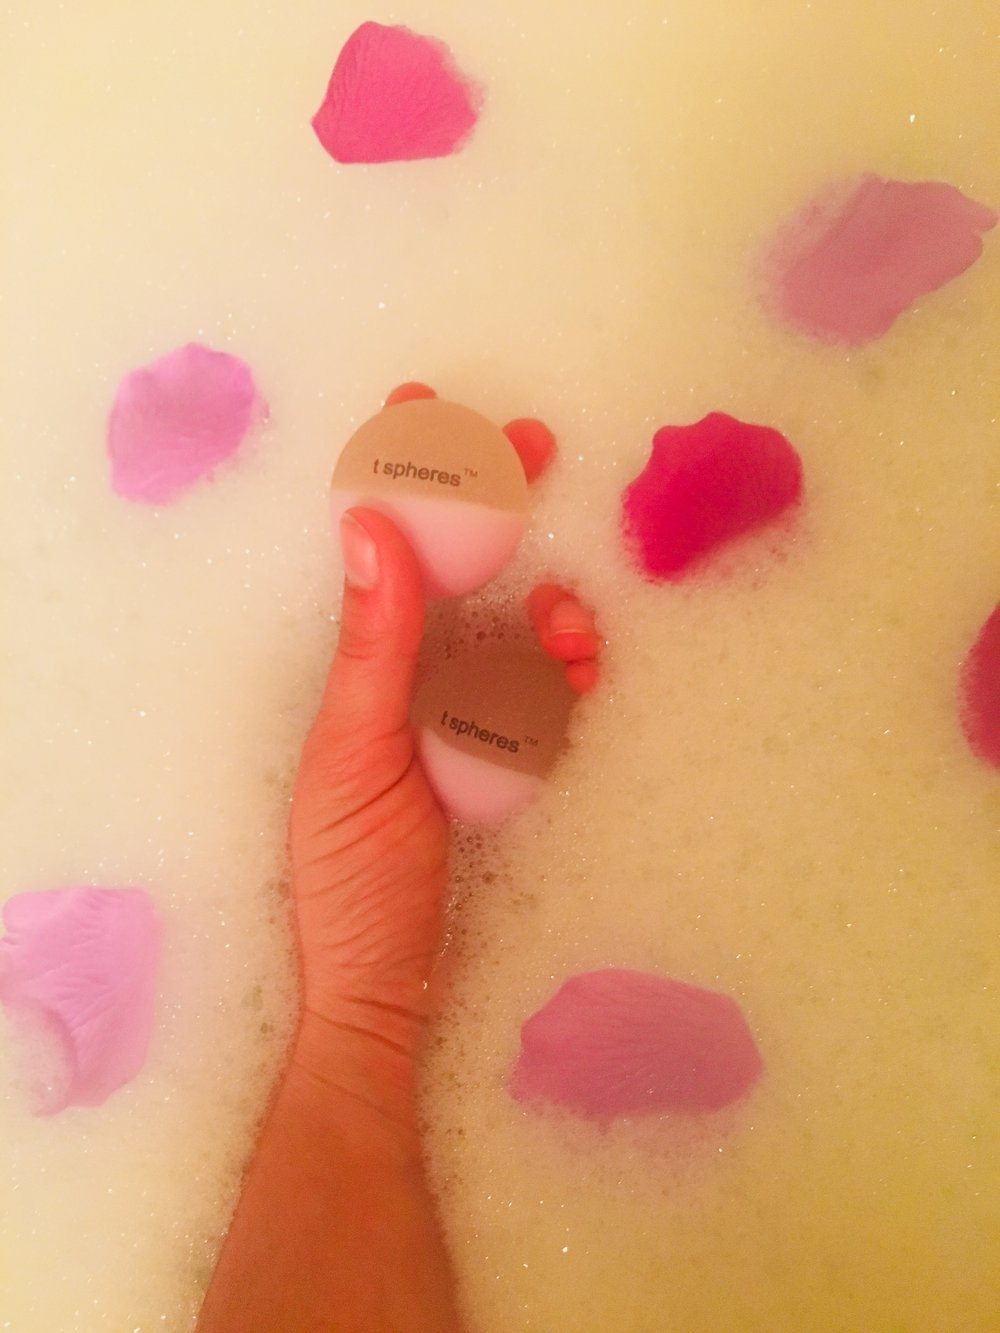 Indulge and re-set in a lavender bubble bath!